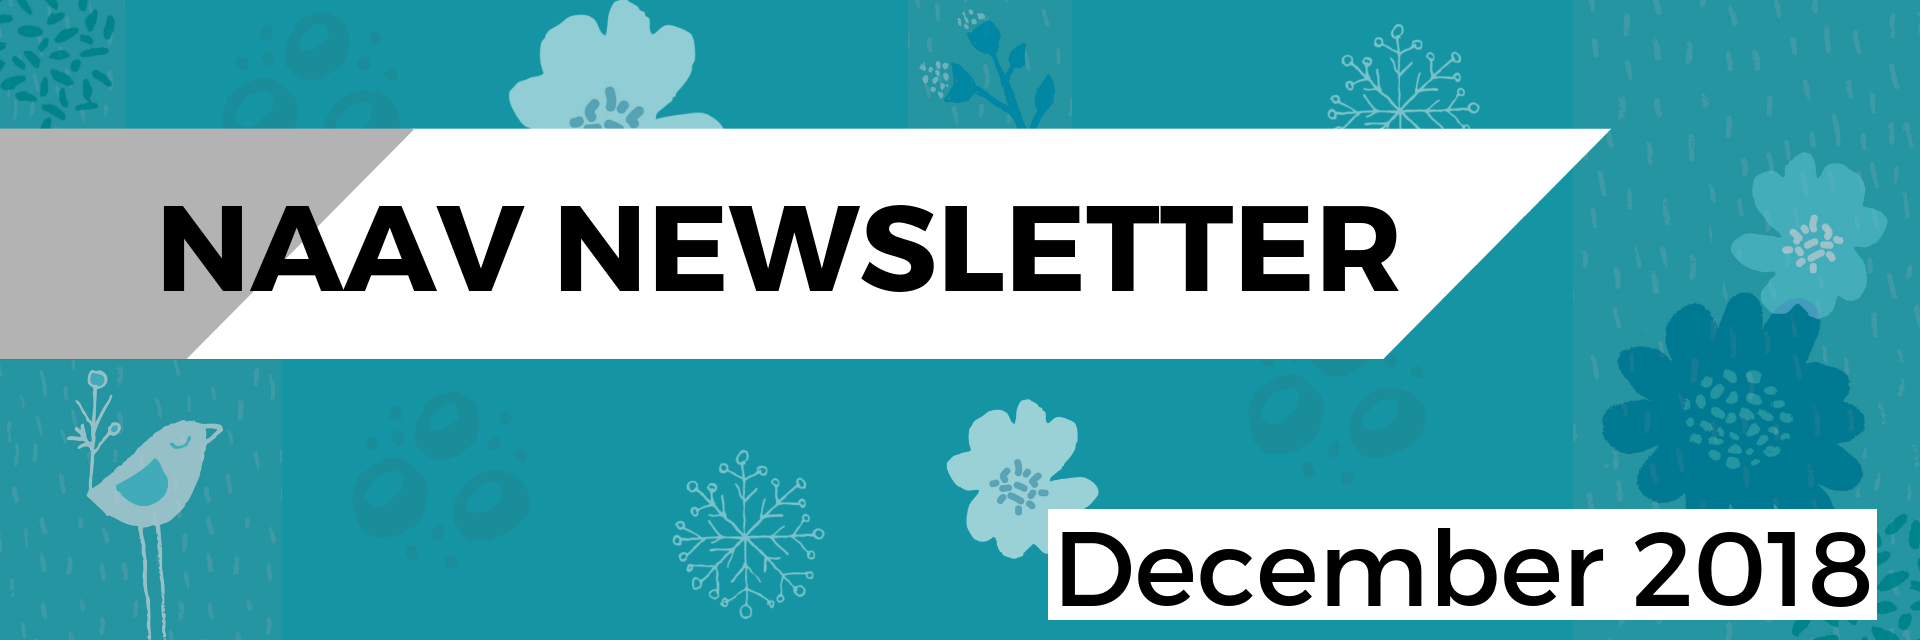 Newsletter Headers (4).png